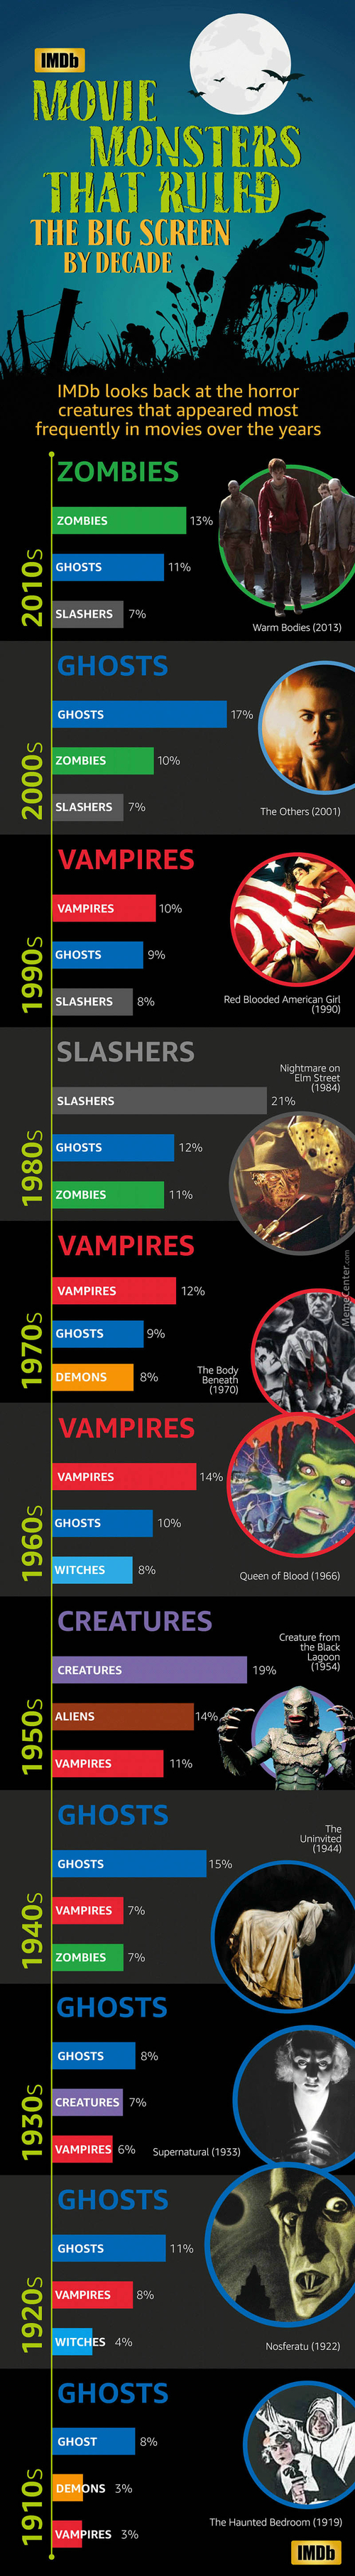 Statistic For Halloween